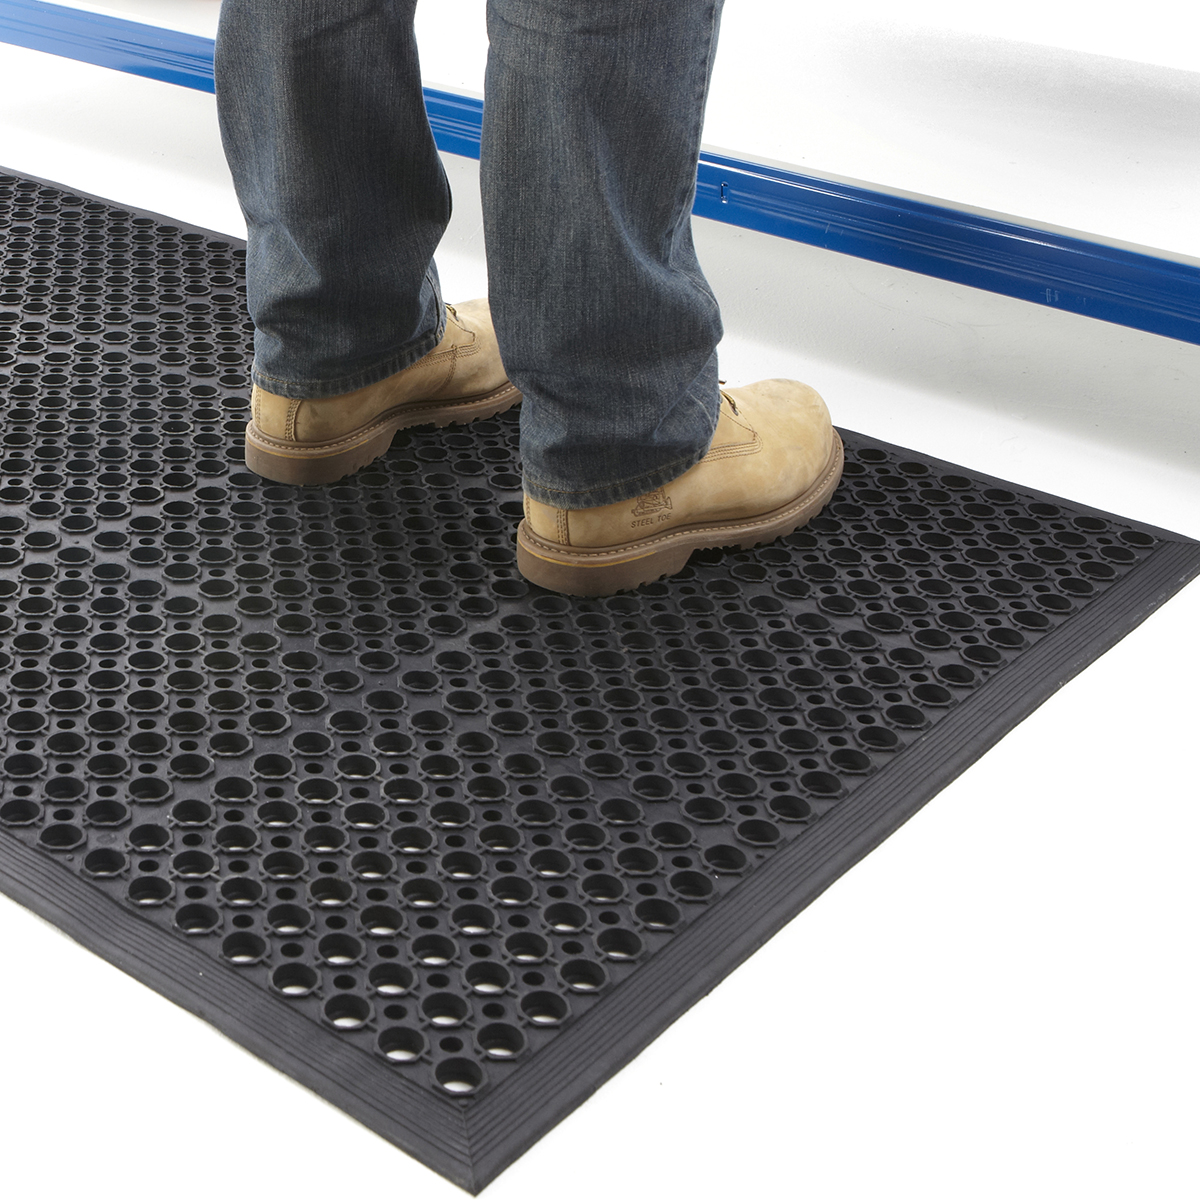 Large Door Mat Outdoor Indoor Entrance Rubber Anti Fatigue 0.9 x ...